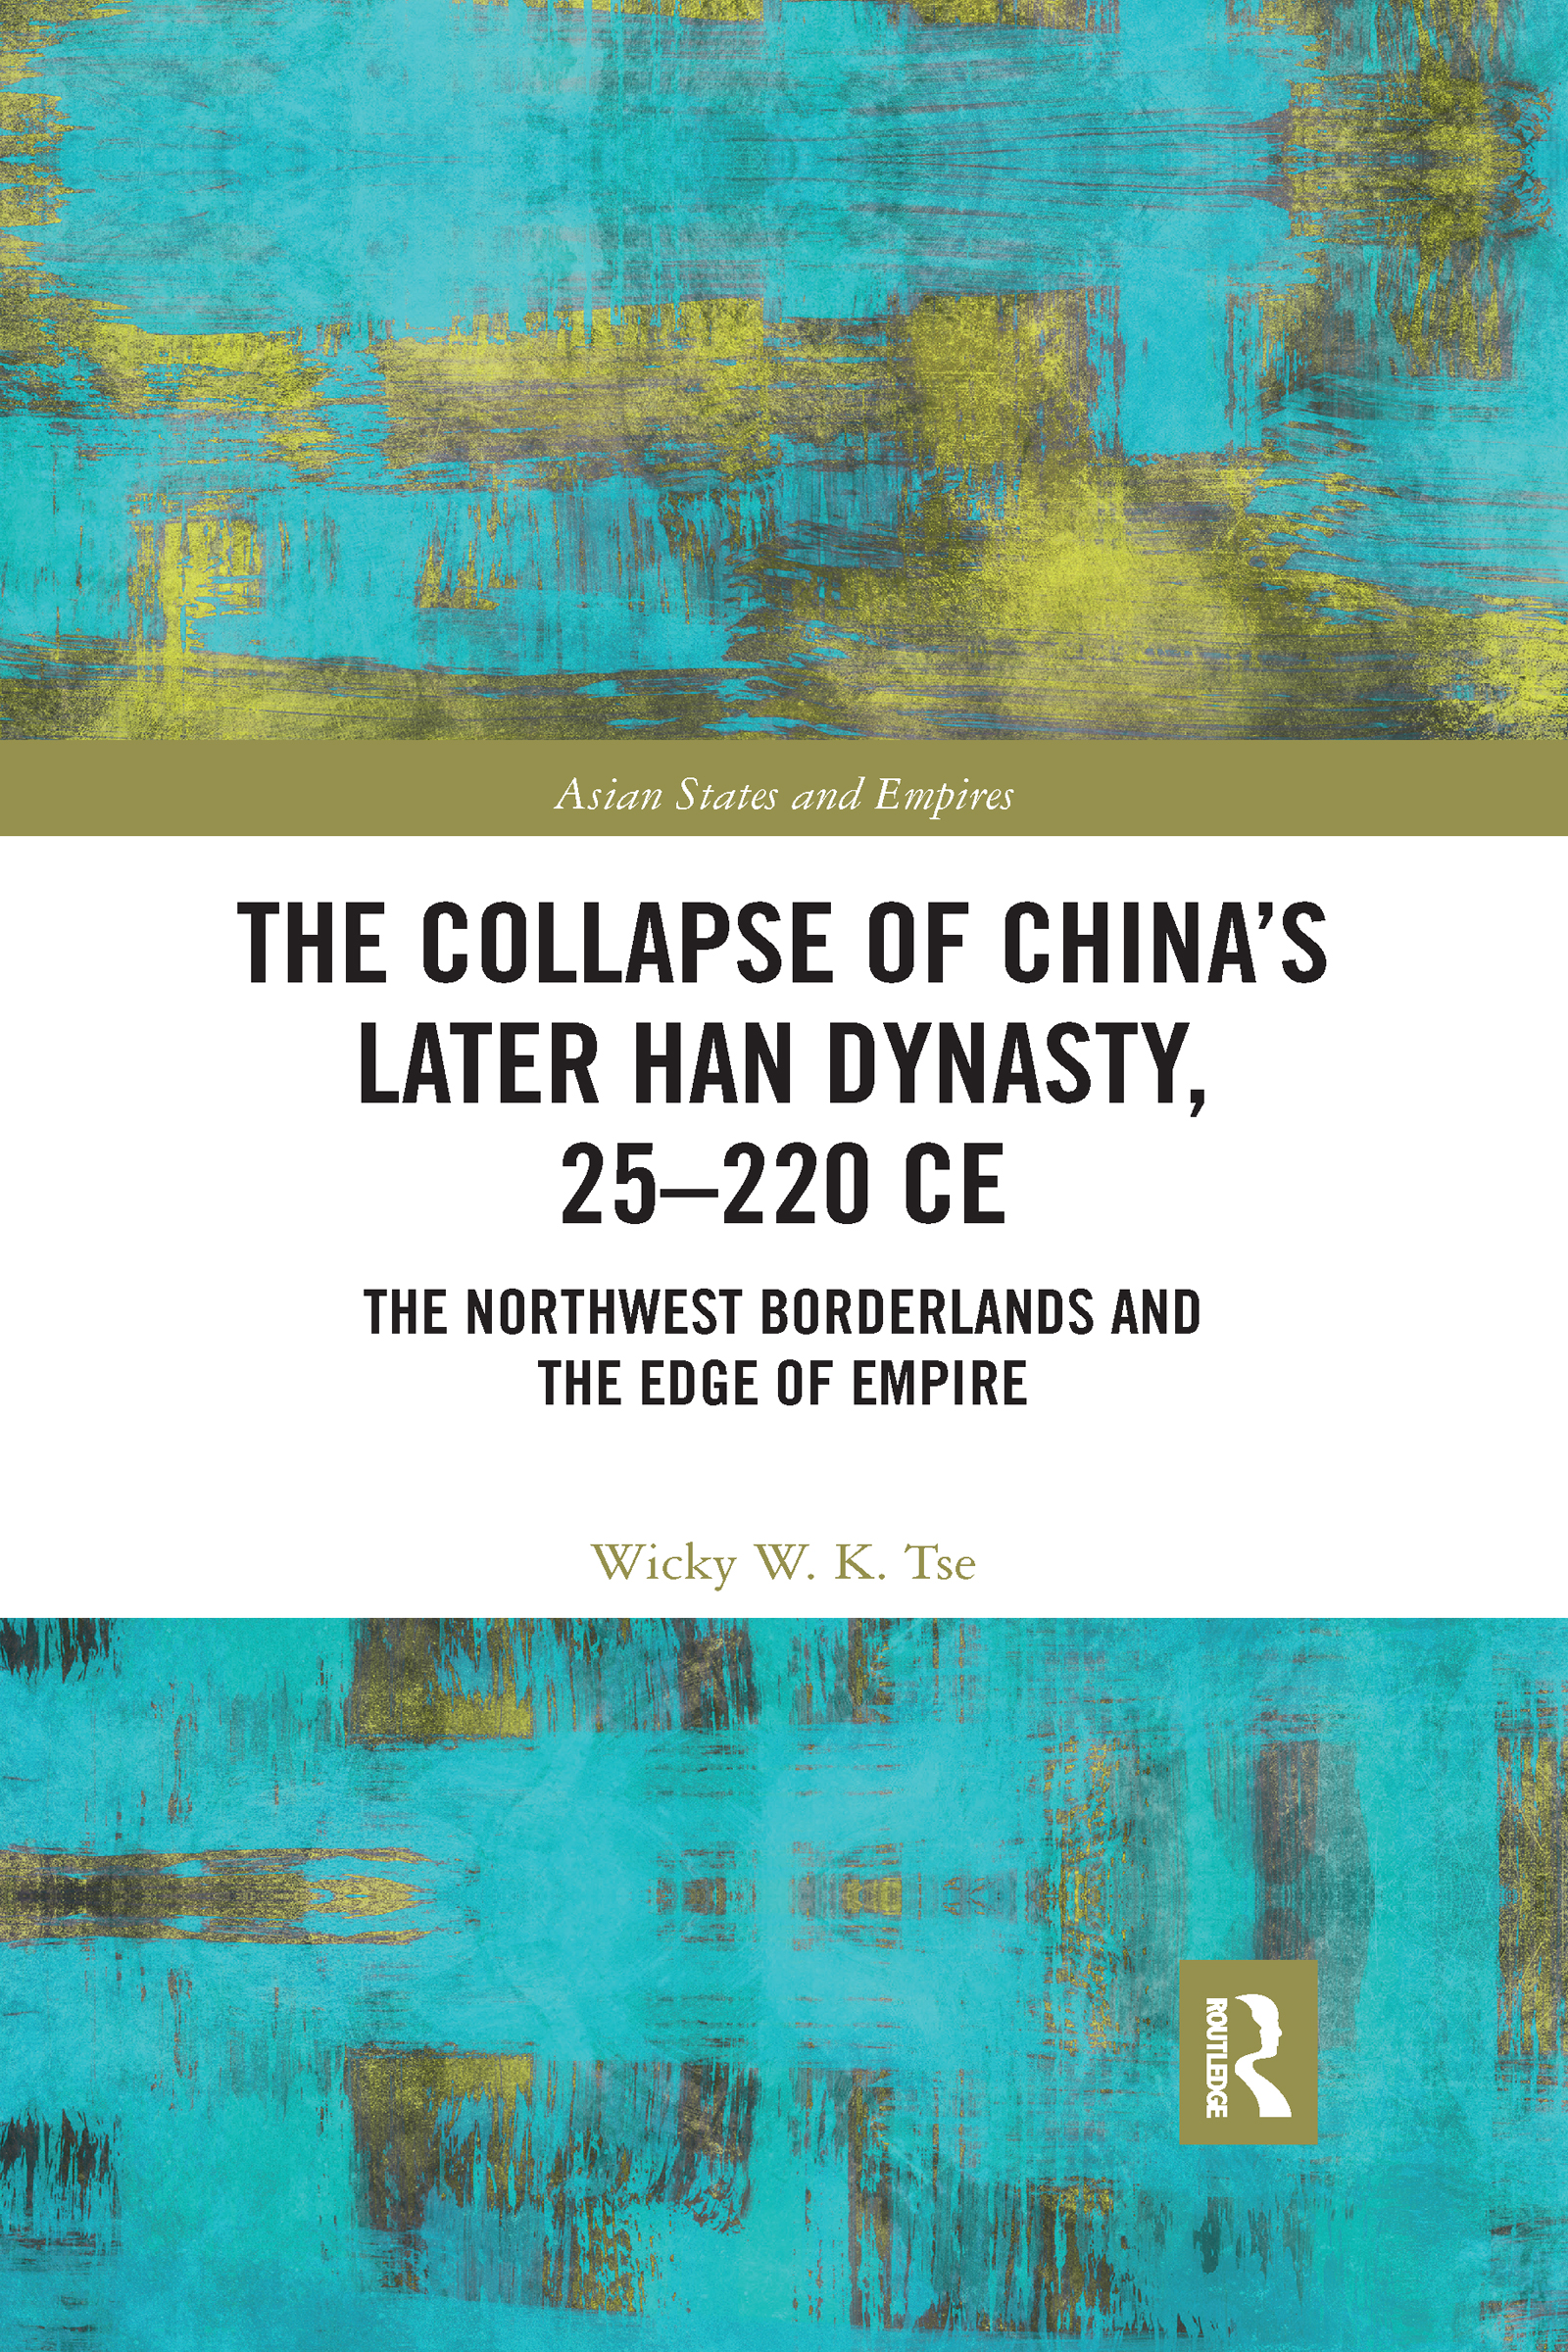 The Collapse of China's Later Han Dynasty, 25-220 CE